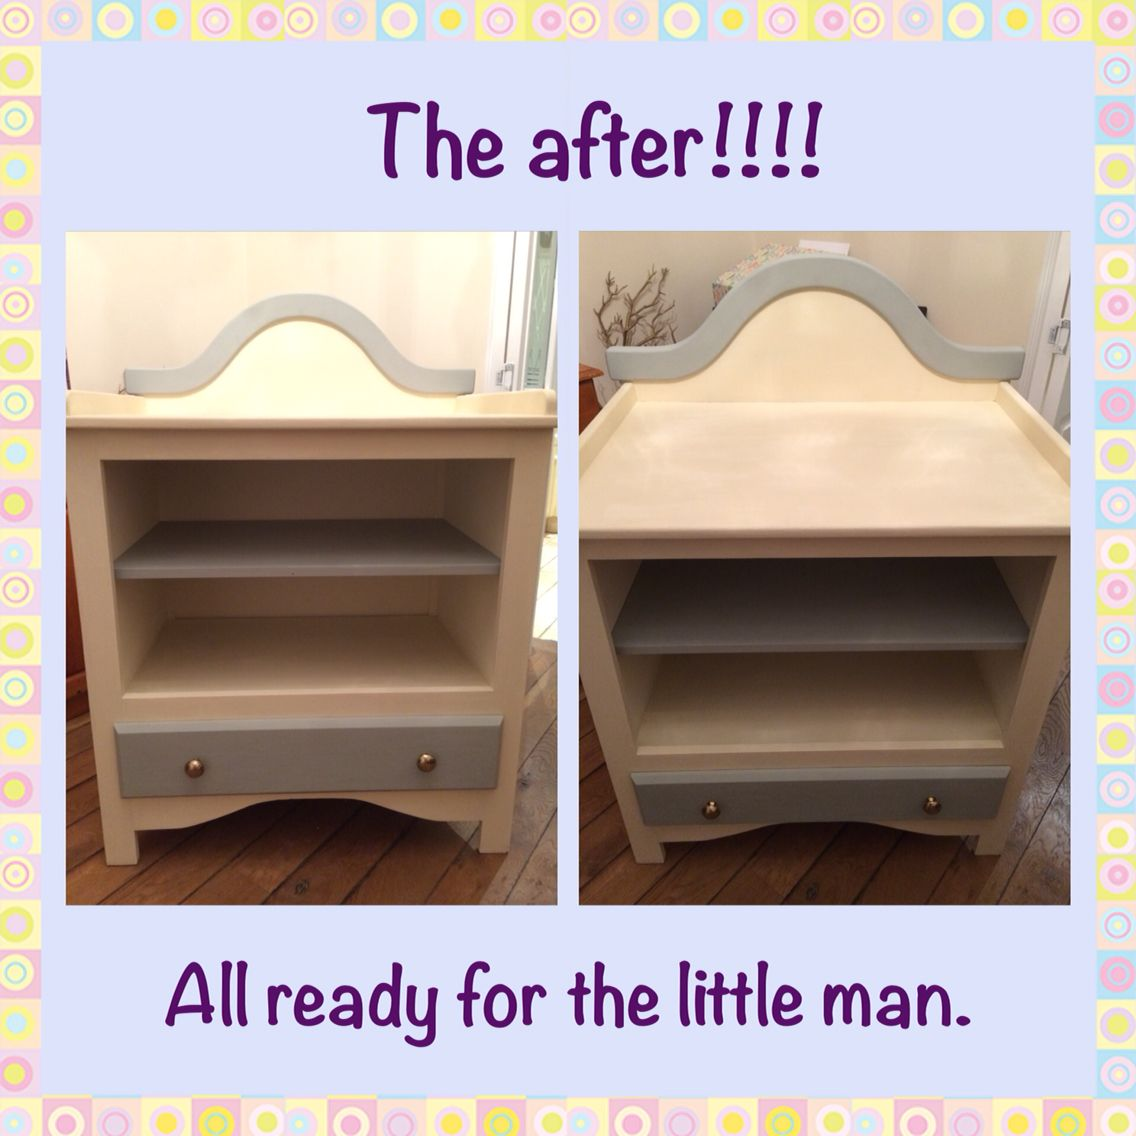 We've finally had chance to sort out the unit for the little man when he arrives! Well done Matt!